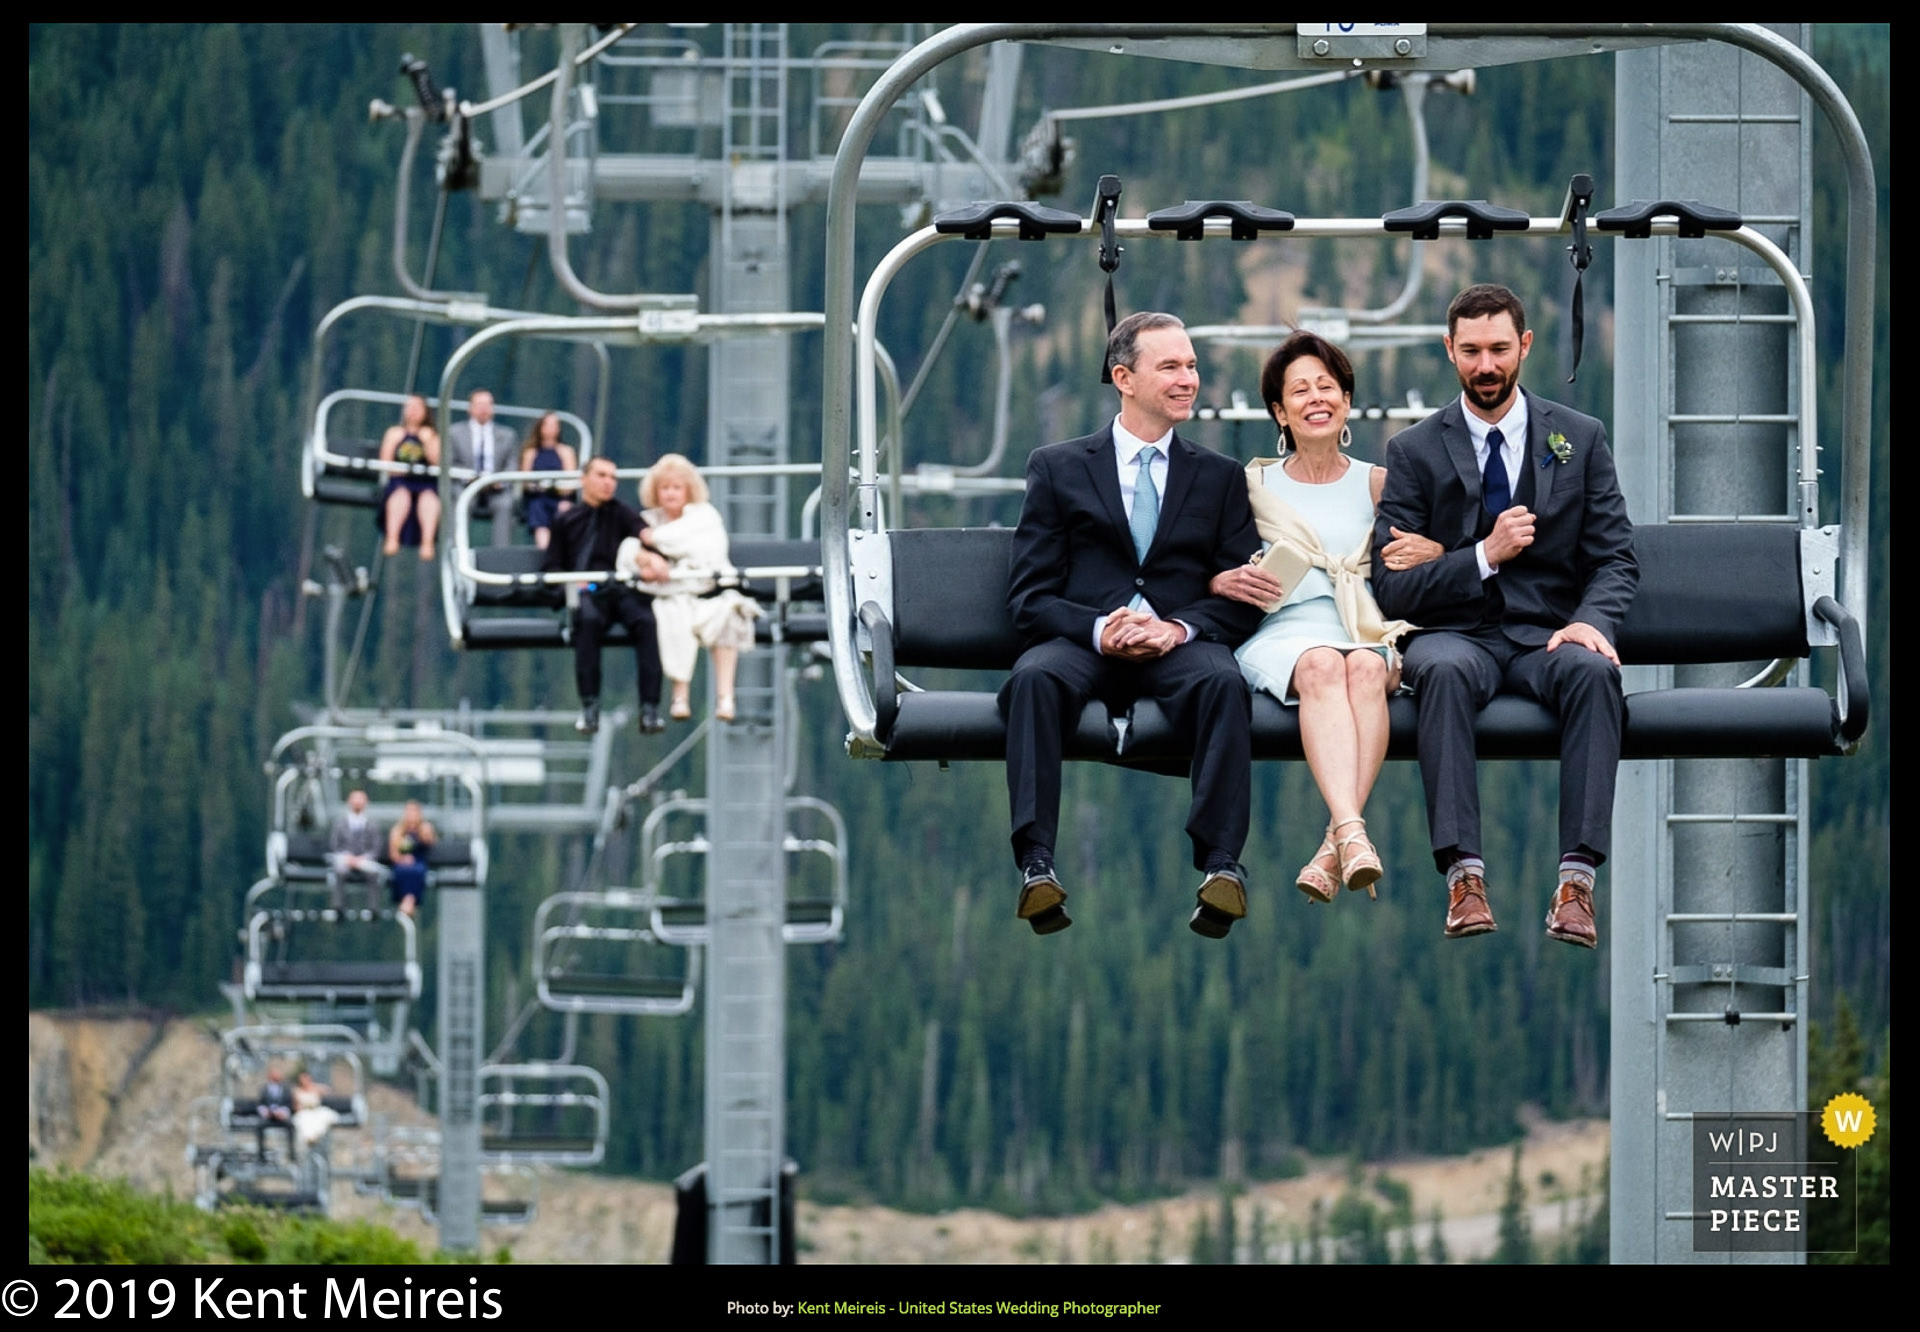 Award Winning Wedding Photojournalist Kalispell Montna Wedding Party Ski Lift Mother Groom